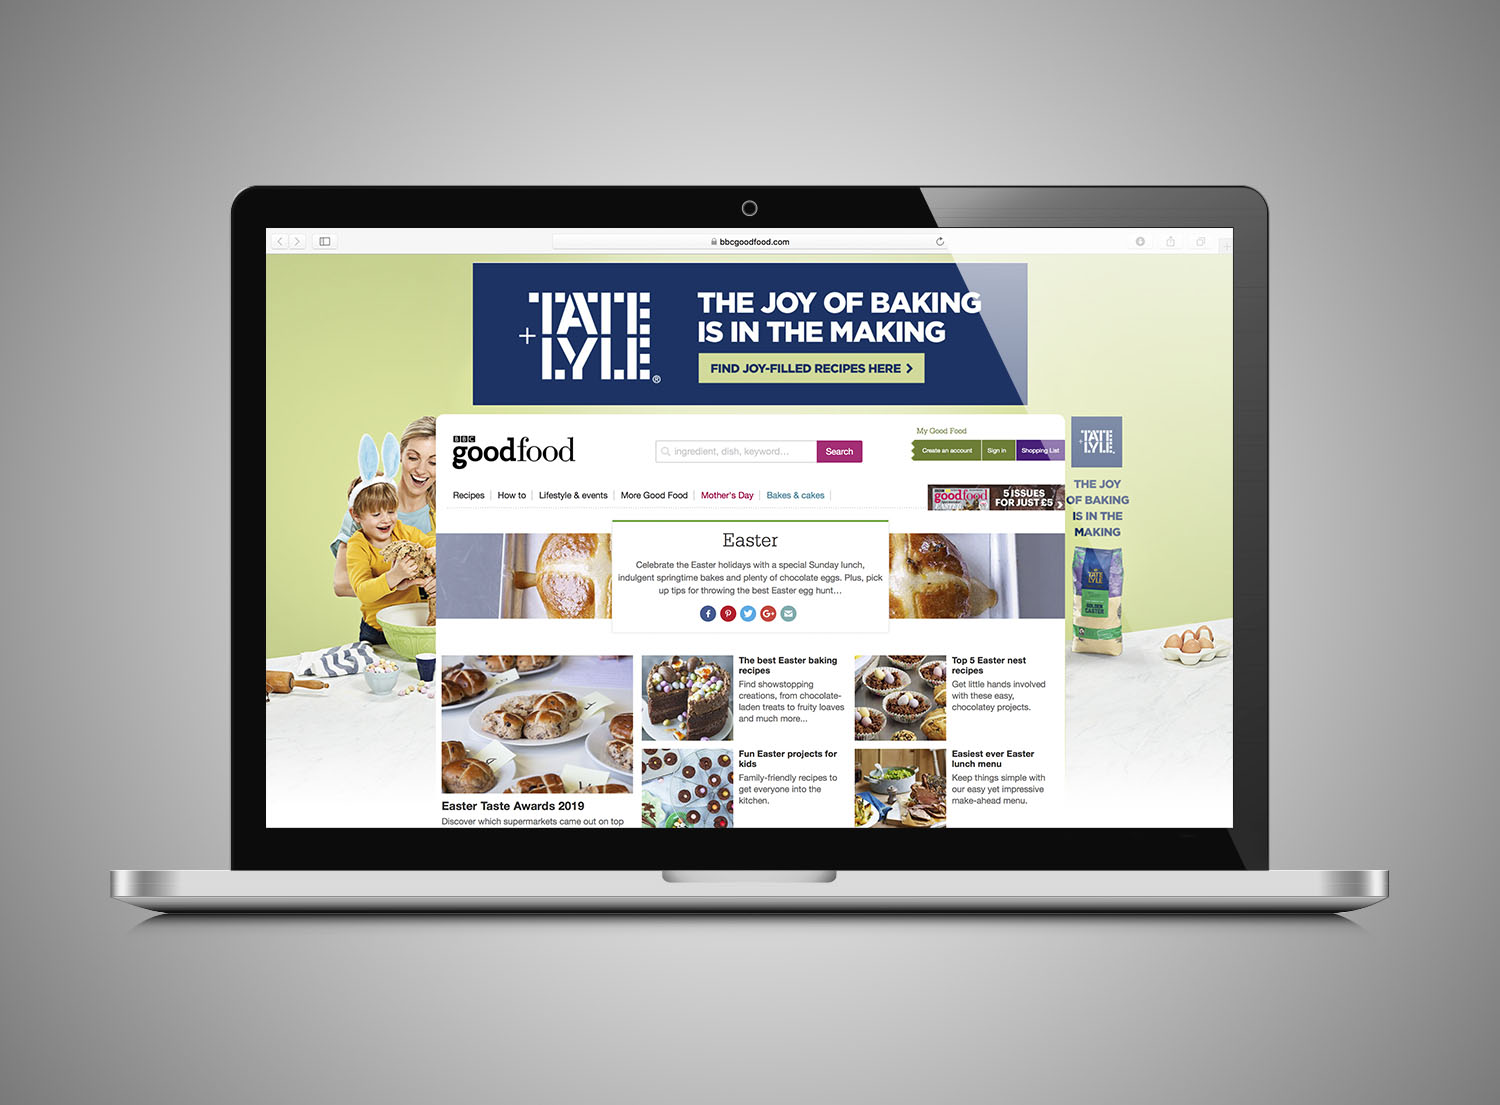 TATE&LYLE_BBC_GOODFOOD_WEBSITE_TAKEOVER.jpg